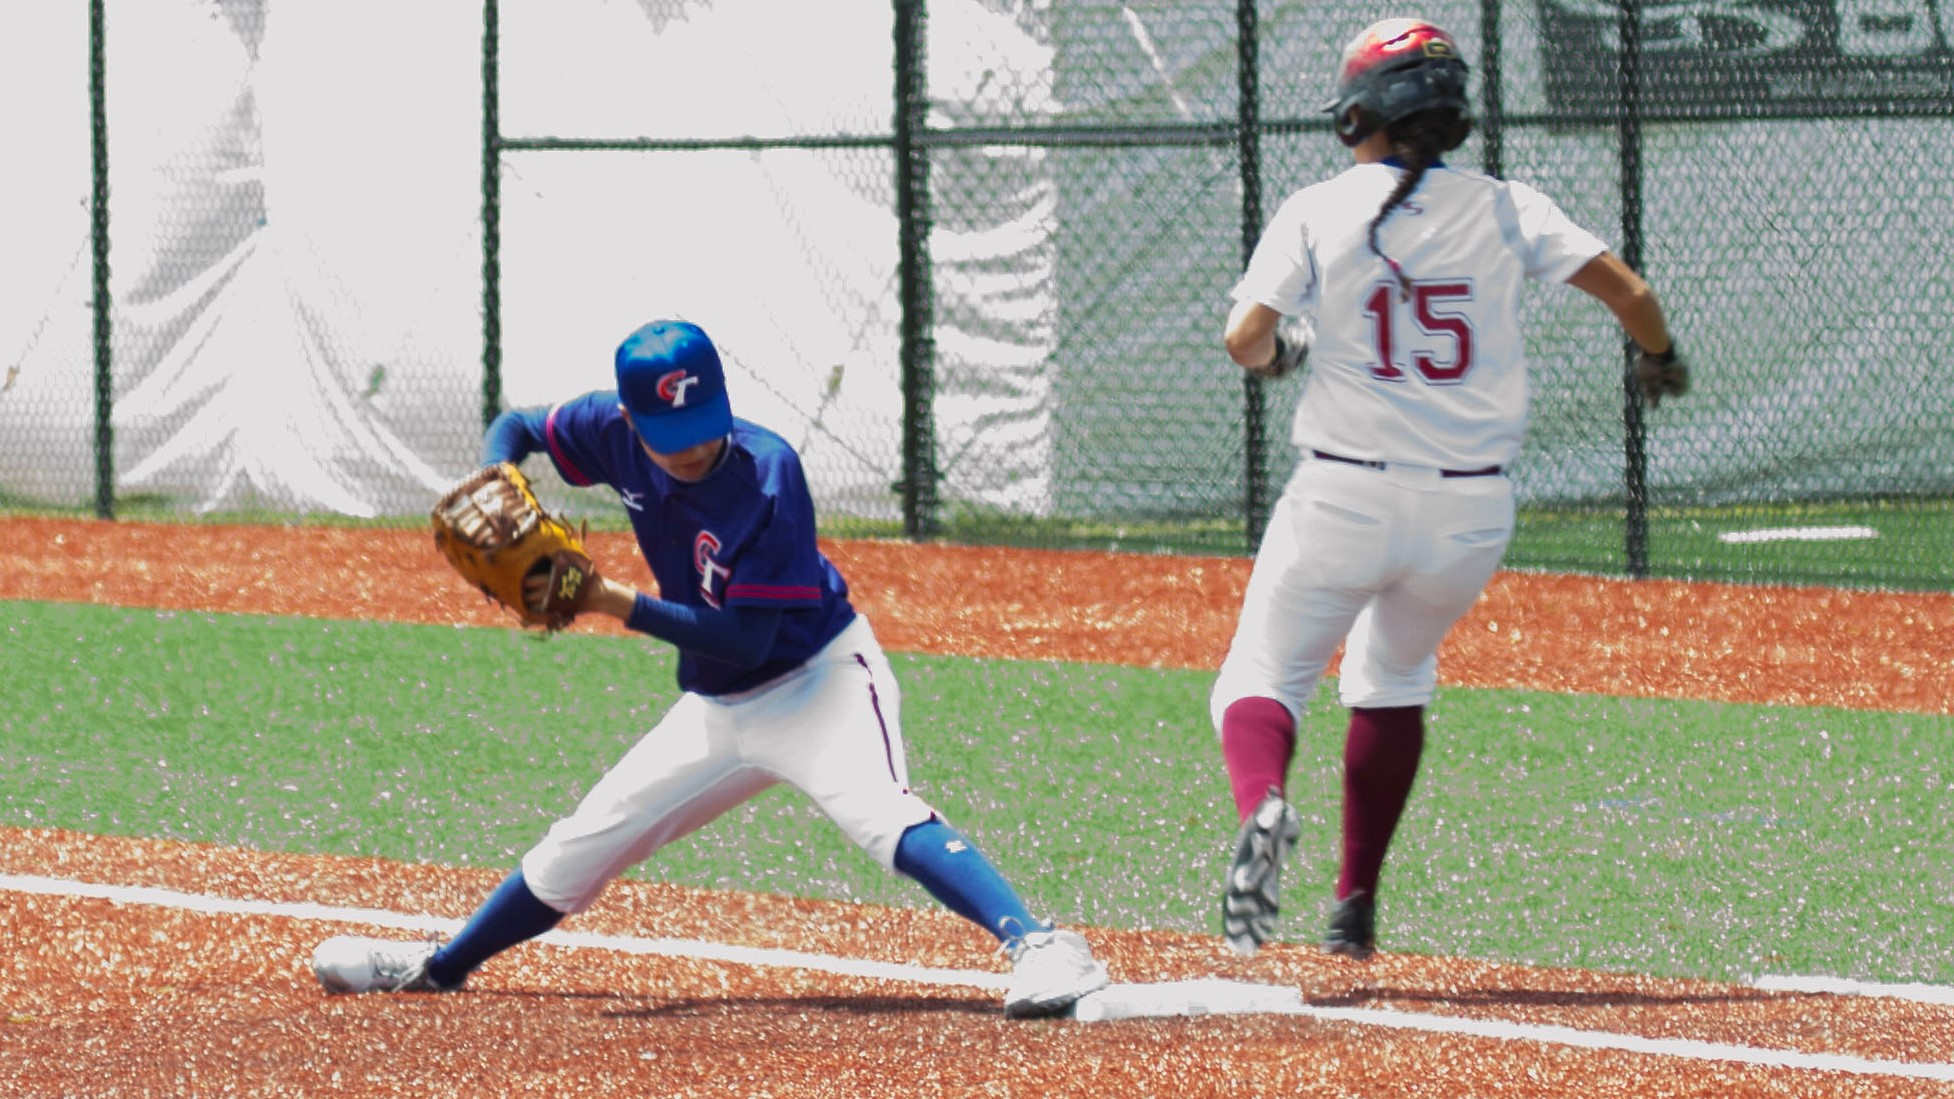 Chinese Taipei-Venezuela was the rematch of the 2016 bronze medal game